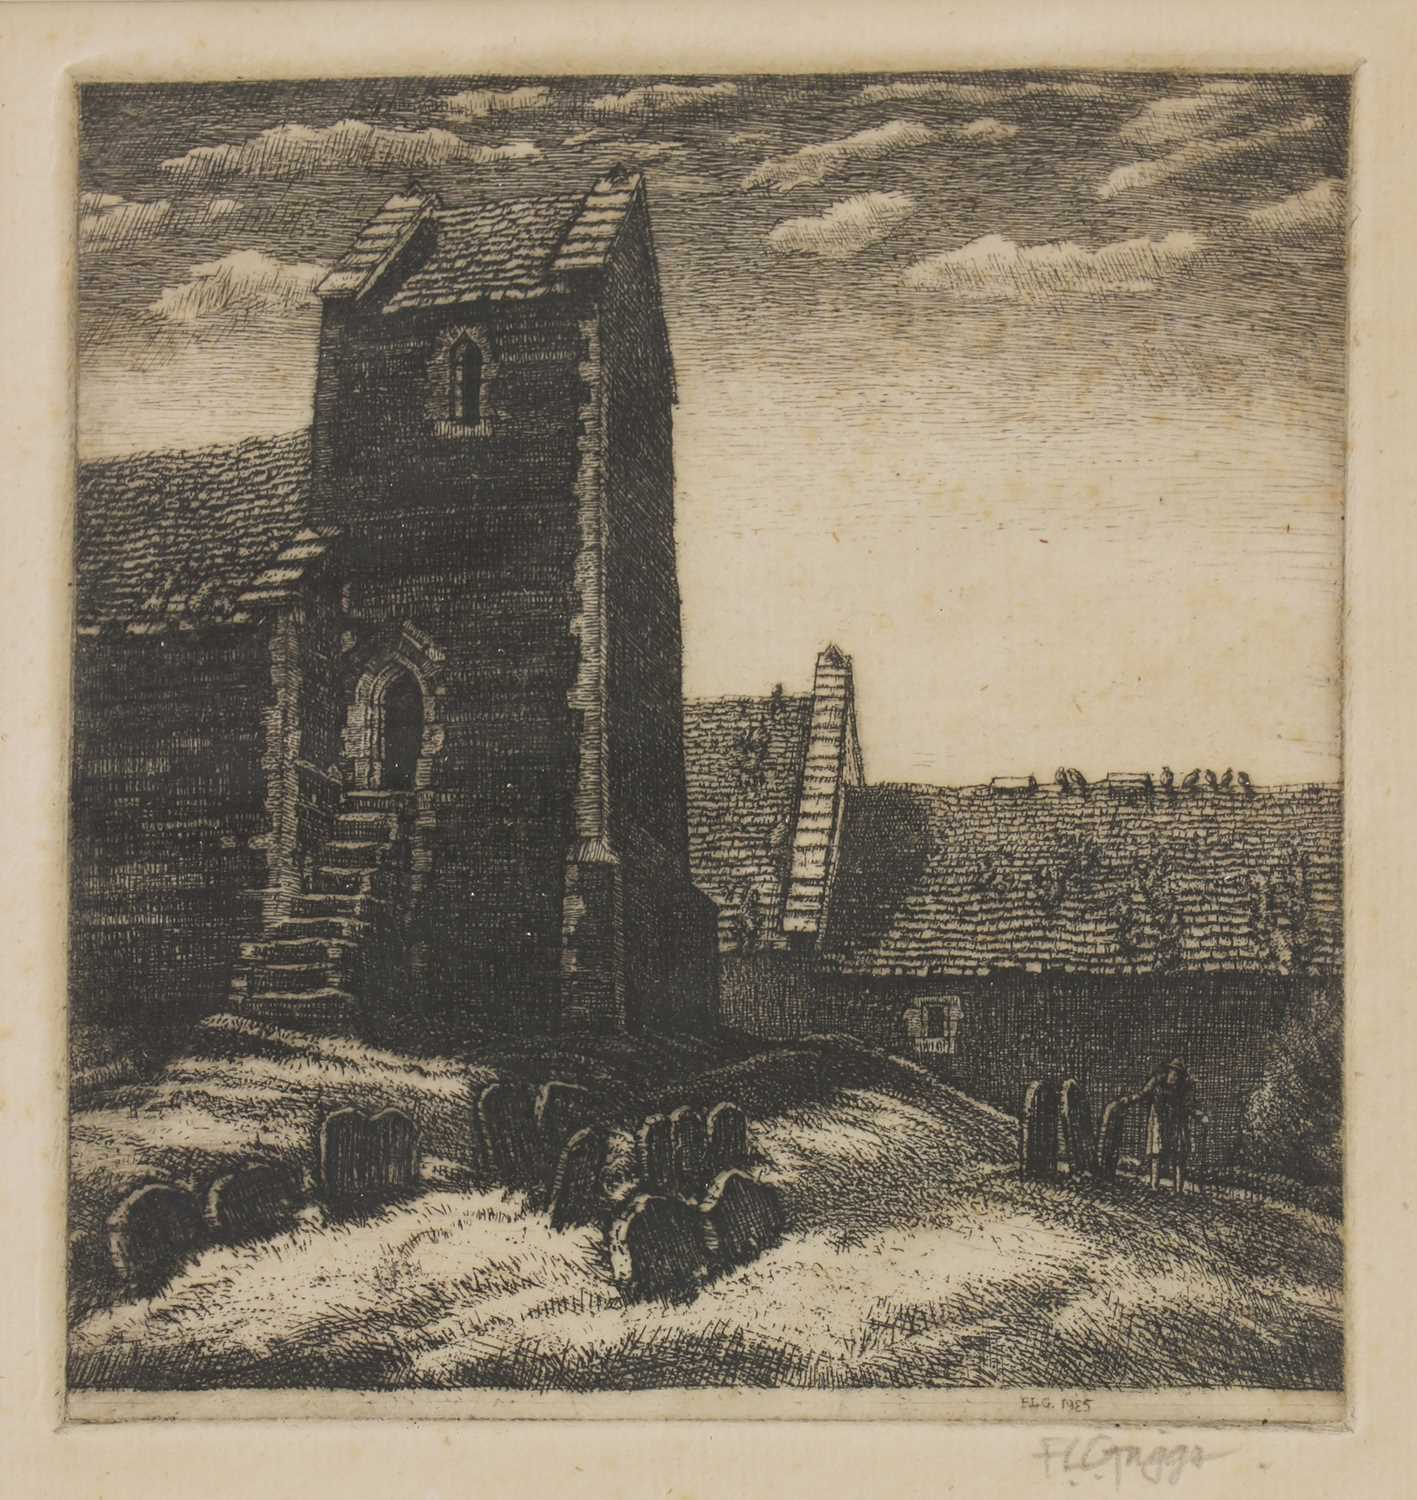 Lot 51 - Frederick L. Griggs (1876-1938)